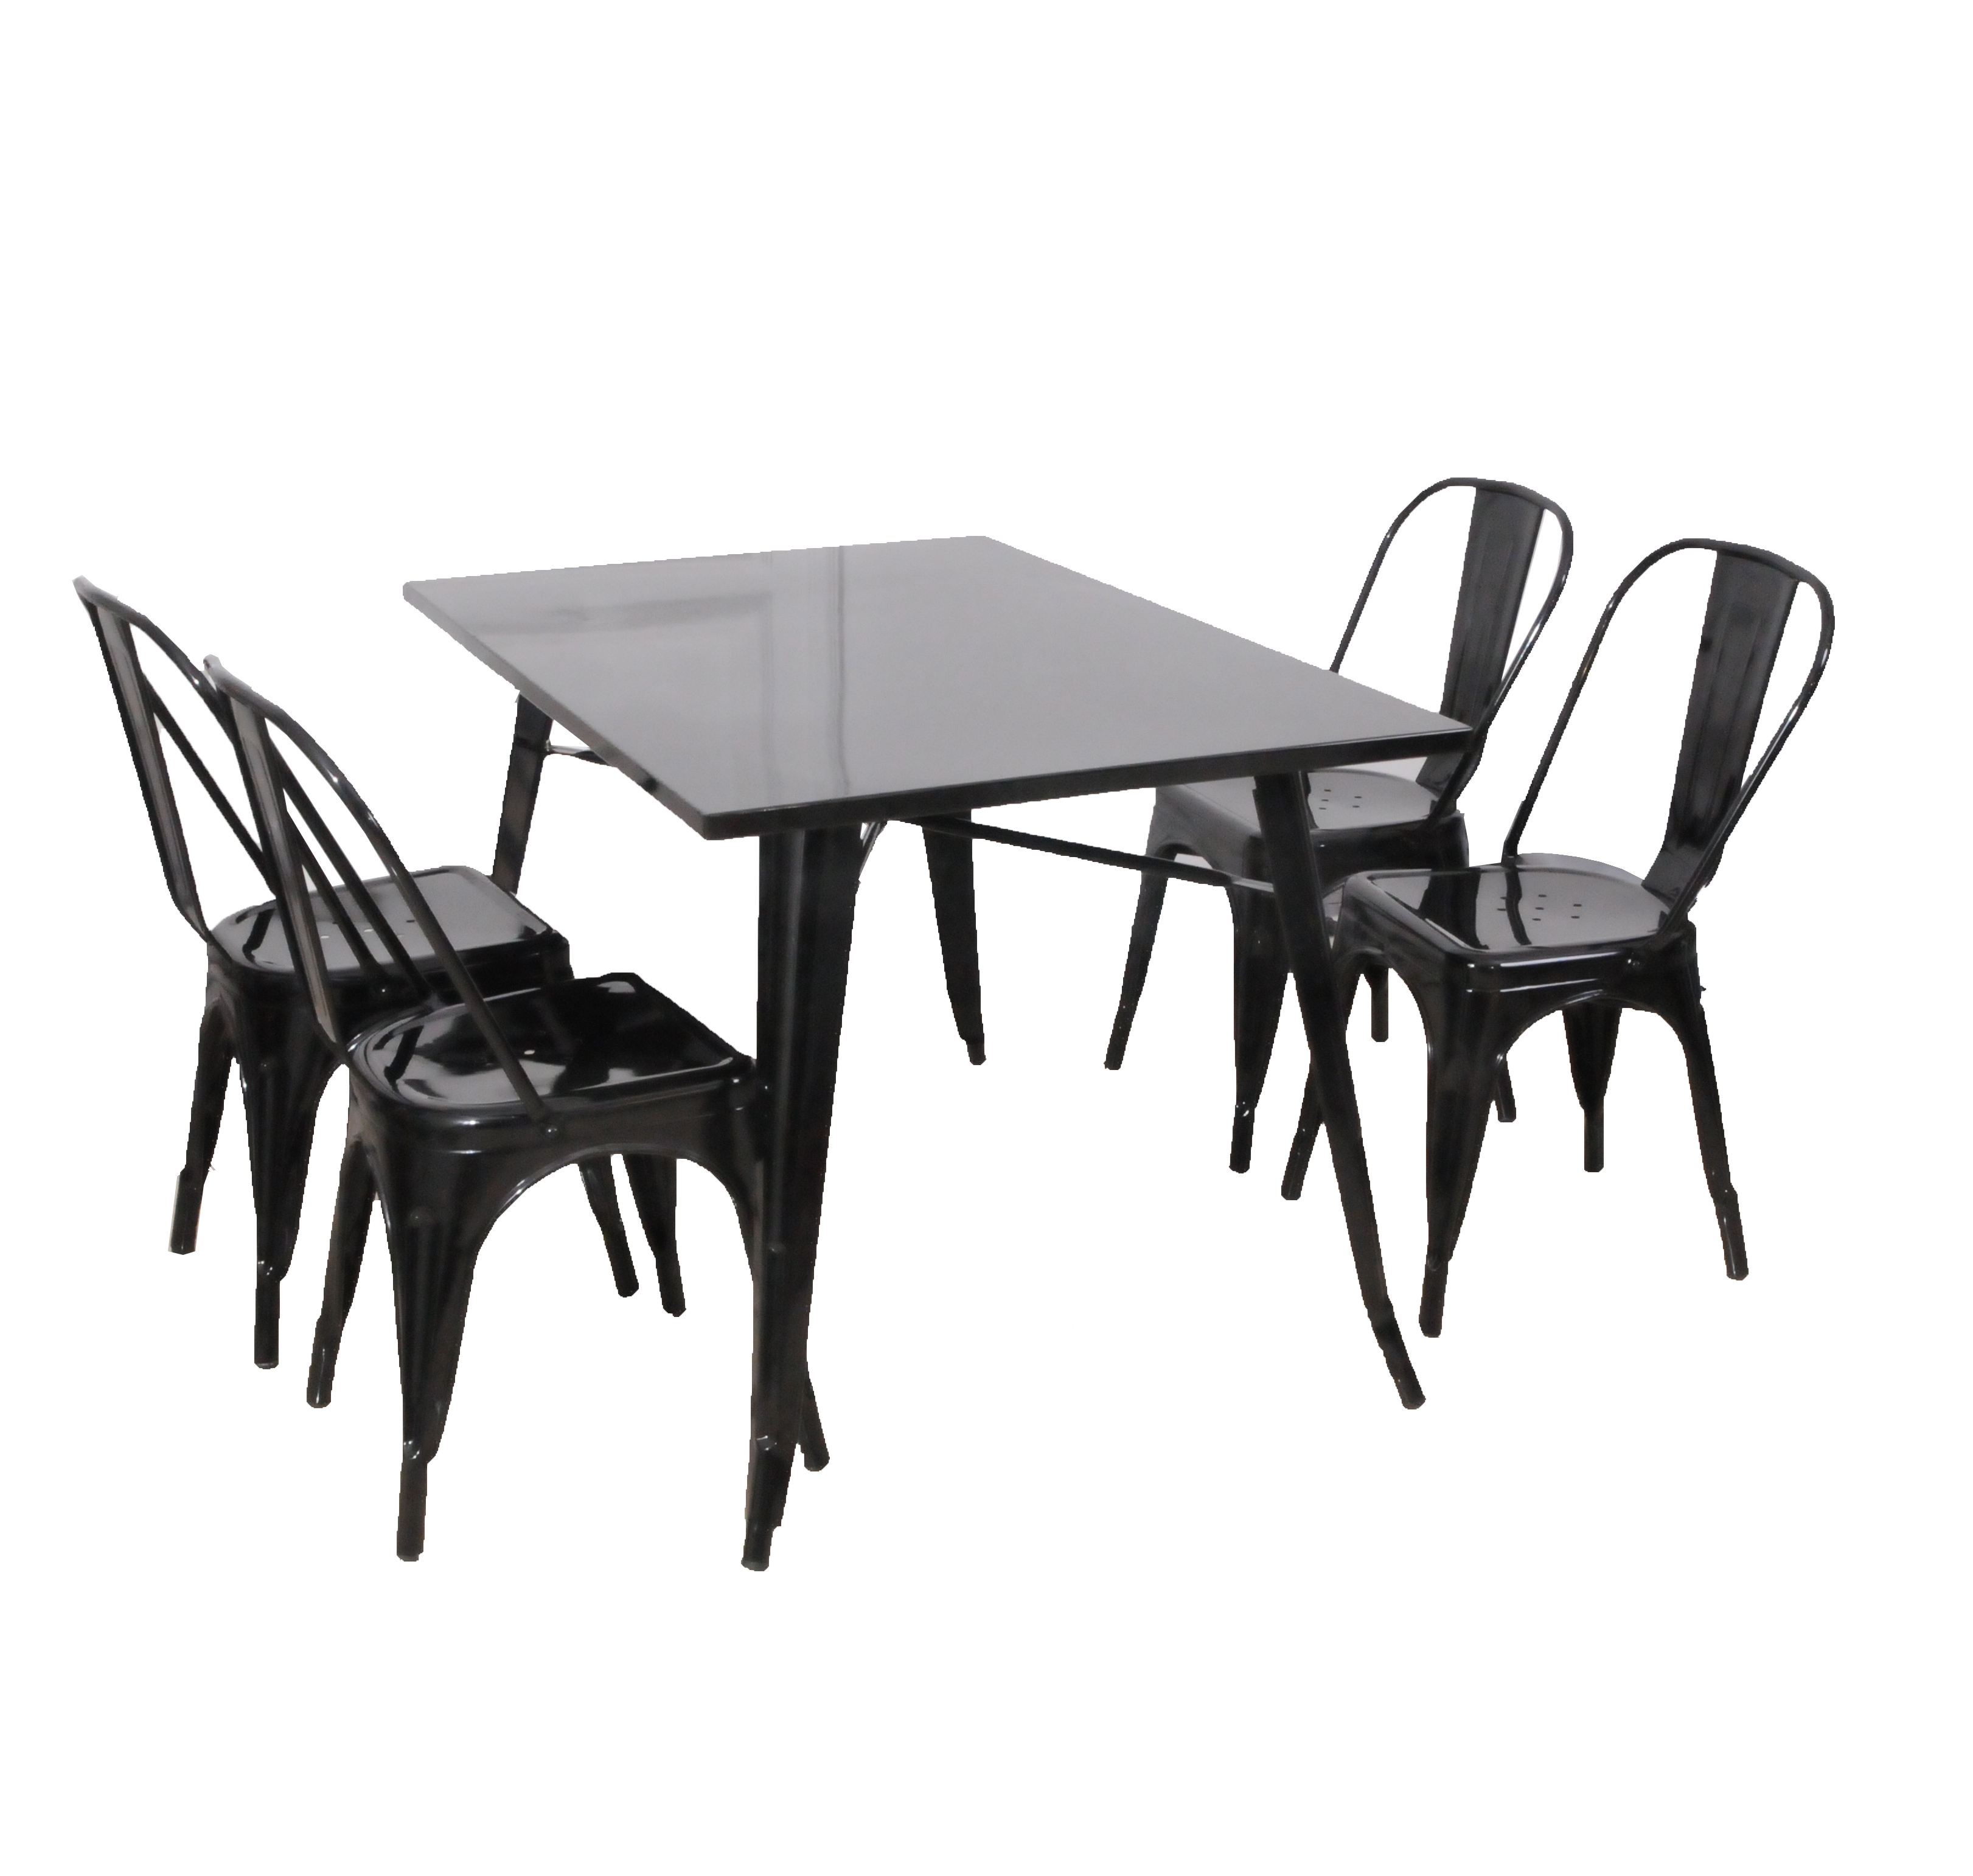 new design outdoor furniture outdoor table metal table and chair for sale